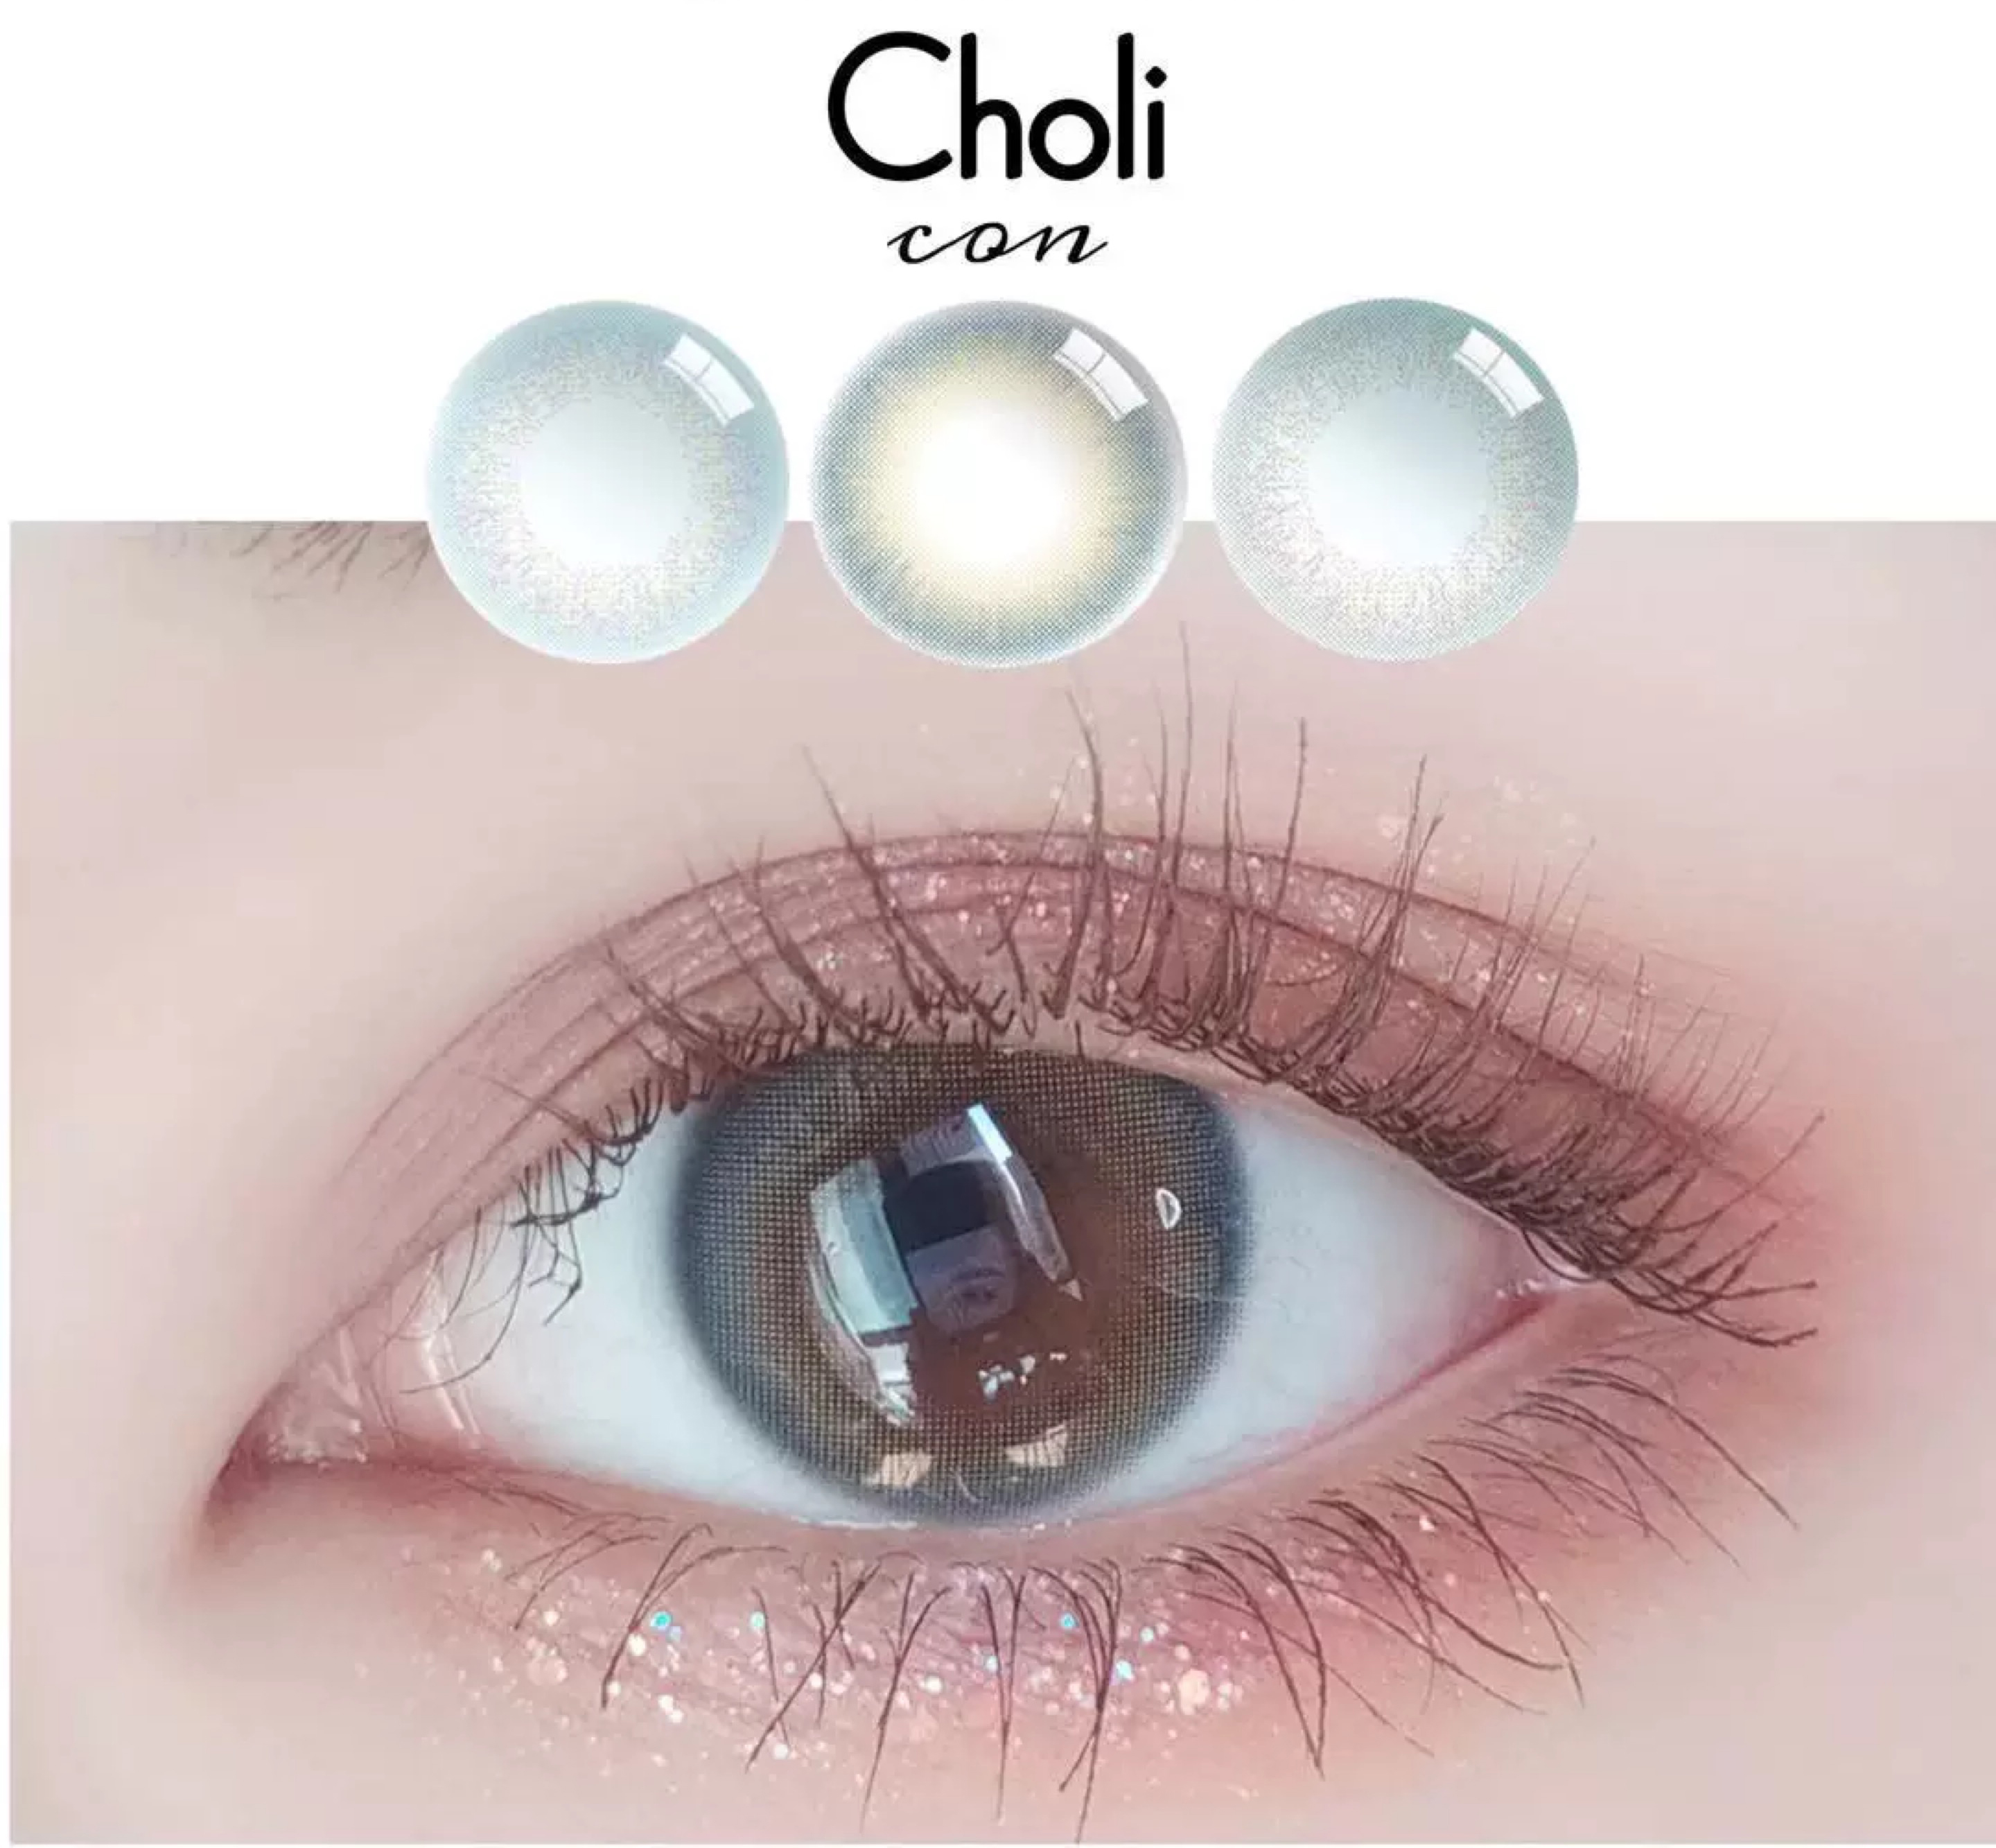 Choli Mei pupil Korea throws 2 female small diameter mixed blood color contact lenses pearl blue Zeus green blue